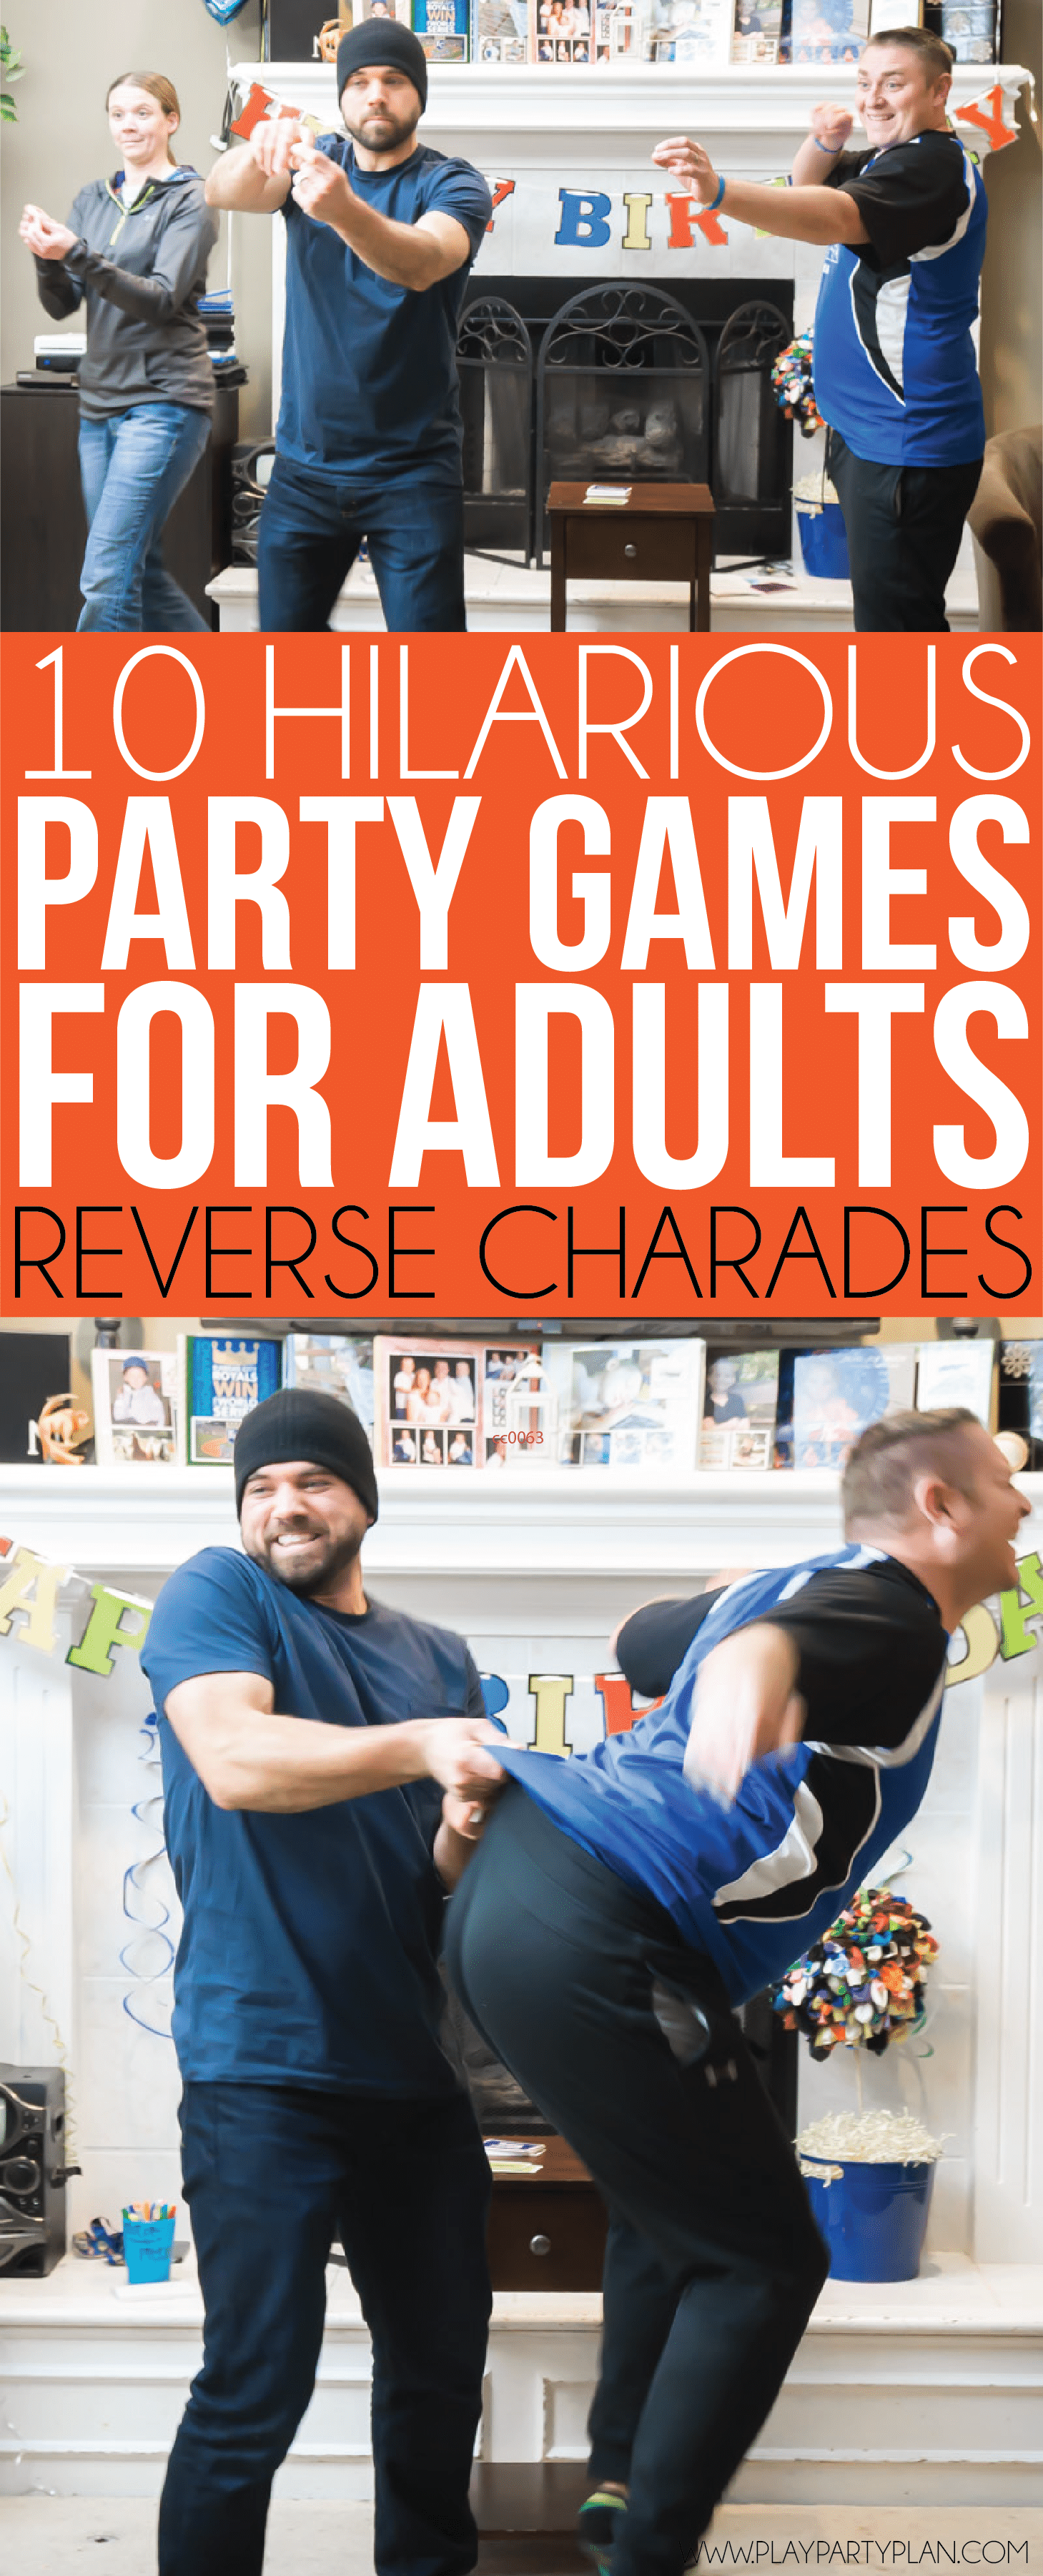 10 hilarious party games for adults that would work great for teens or for groups too